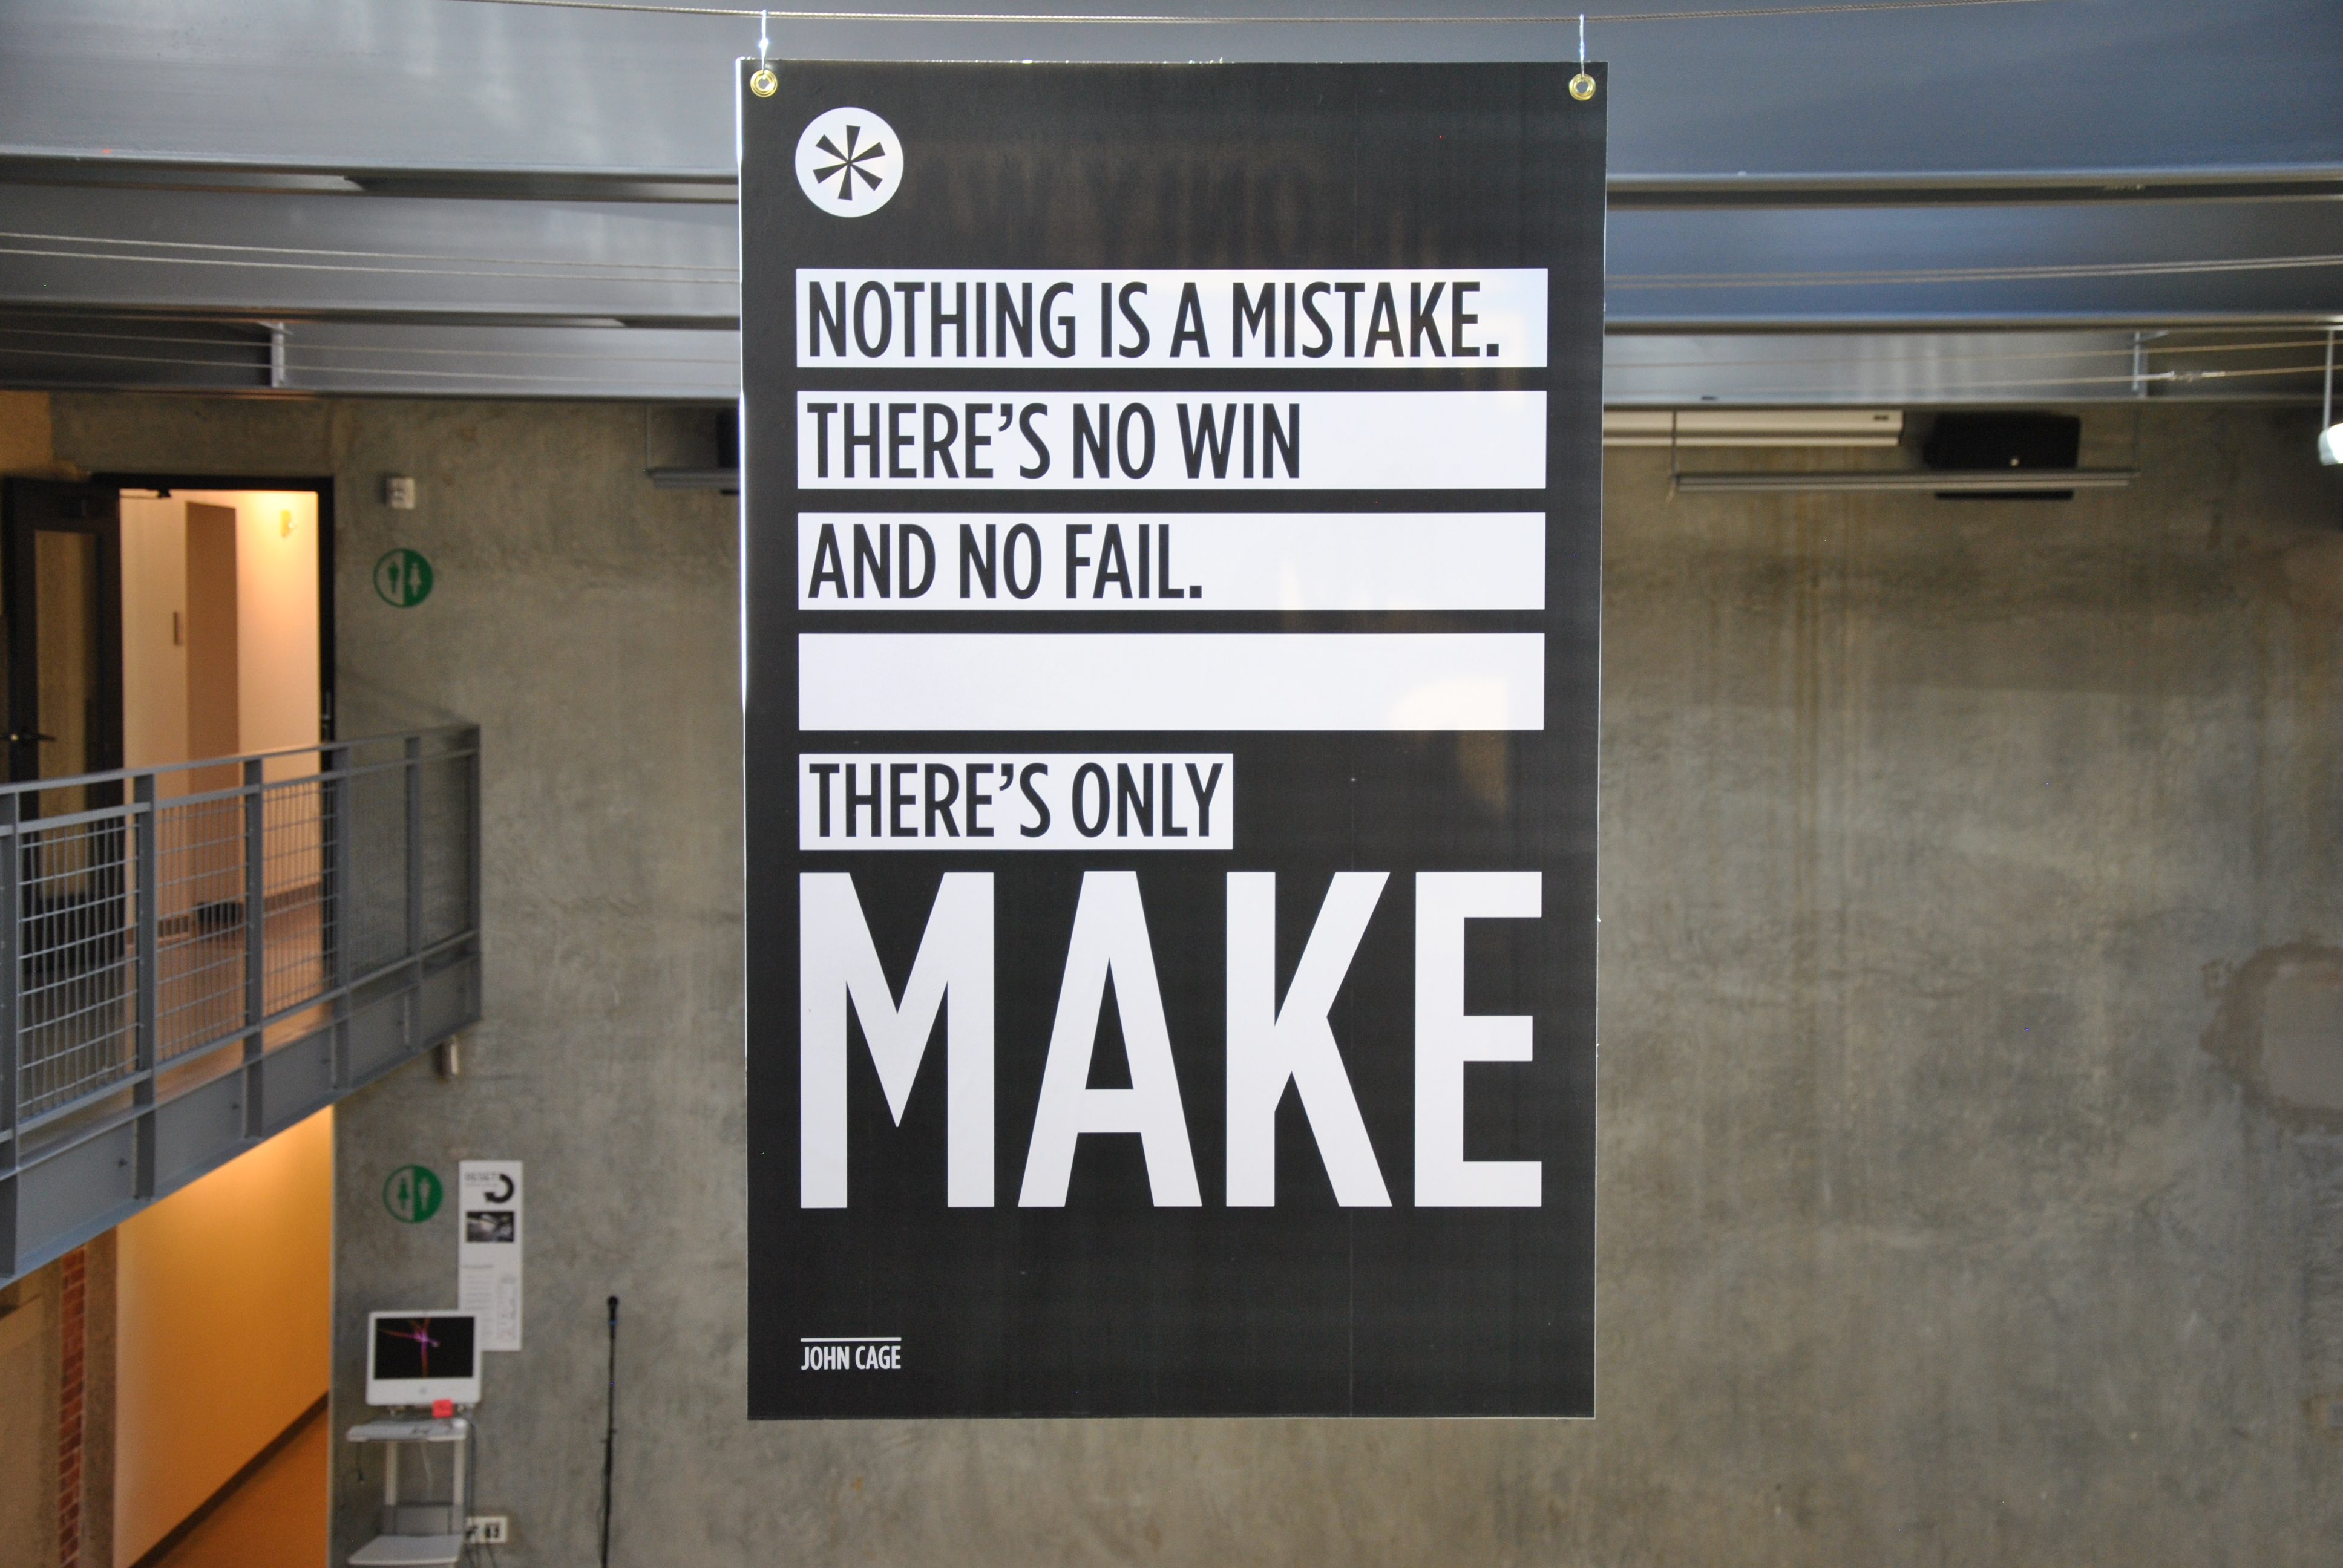 I Was Fortunate To Participate In A Design Thinking Workshop Last Week At  The Hasso Plattner Institute Of Design At Stanford University (aka The  D.school) ...